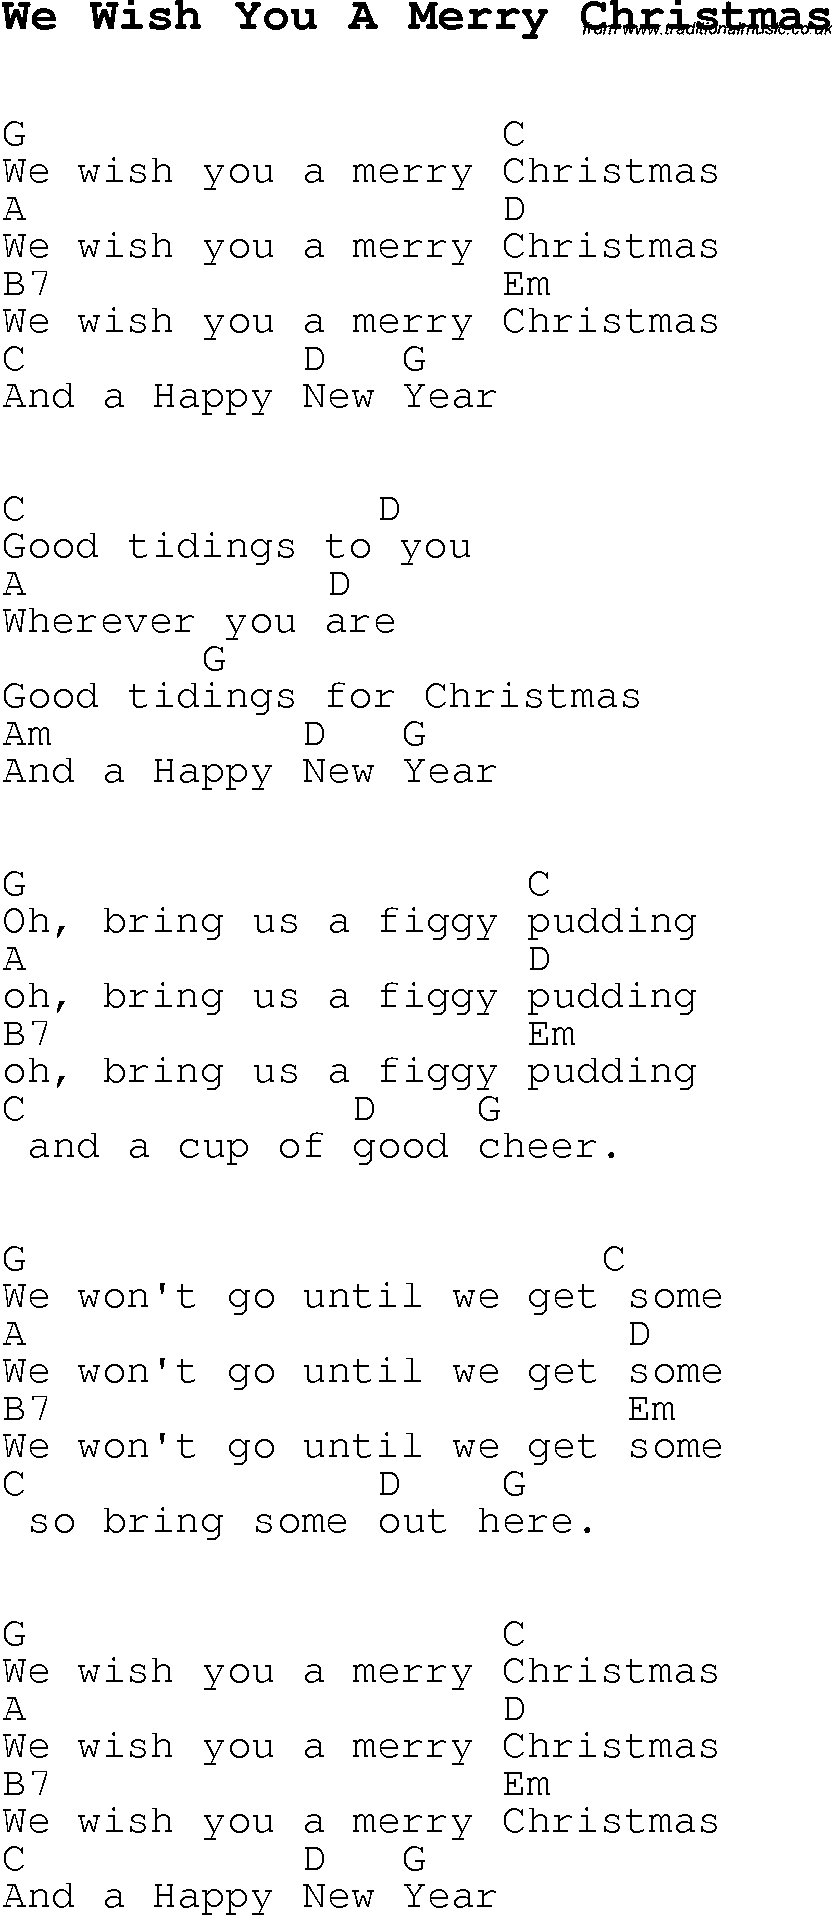 Christmas Carol/Song lyrics with chords for We Wish You A Merry ...